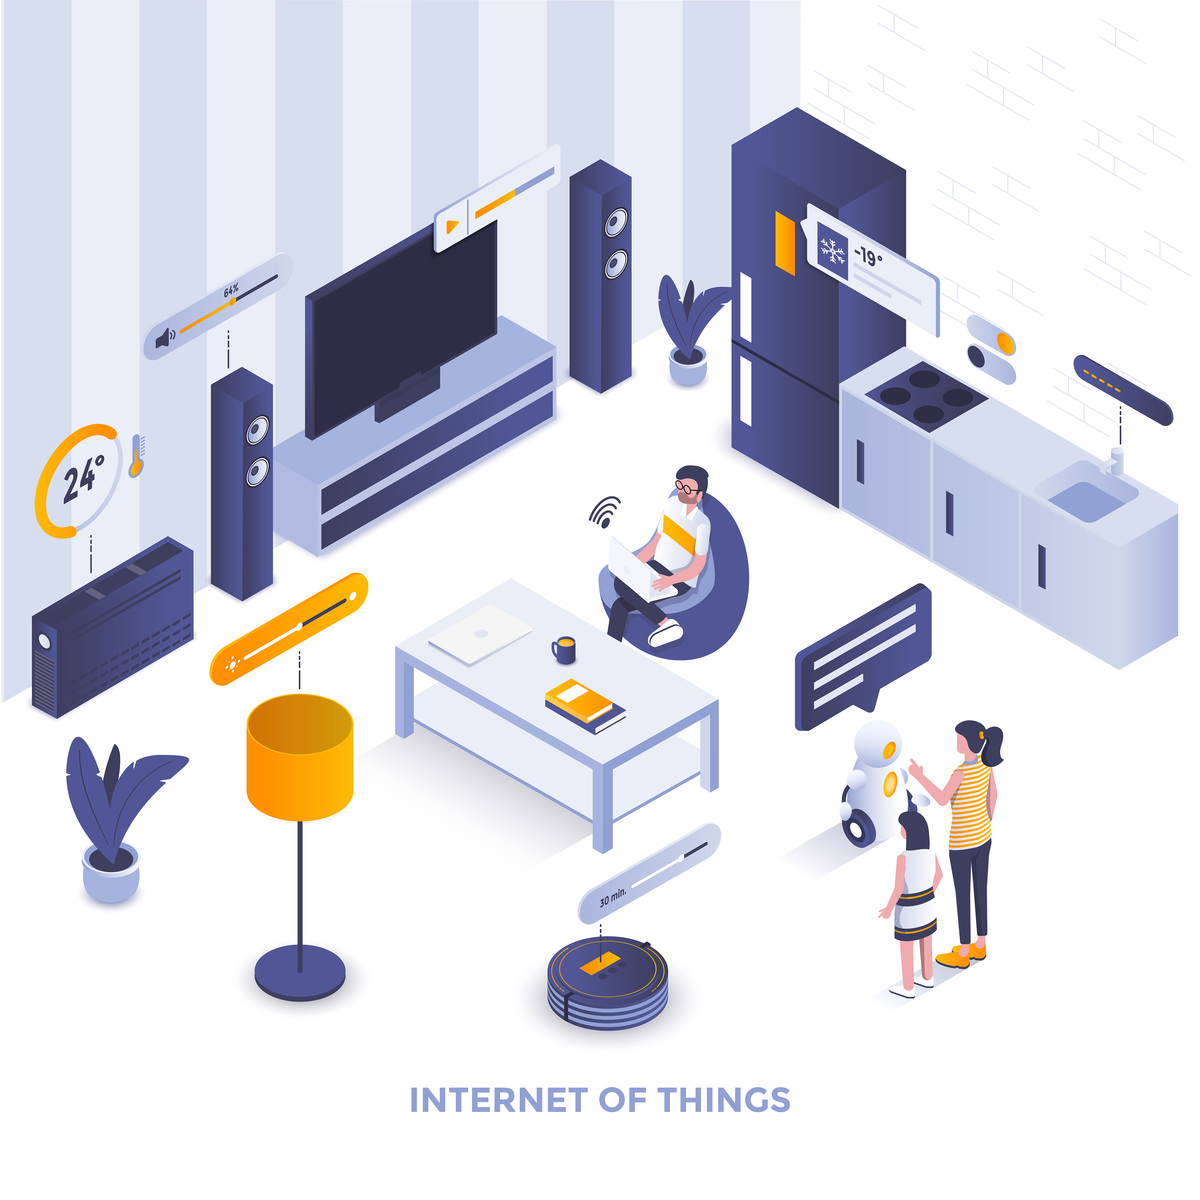 6 Factors to Consider While Choosing an IoT Platform